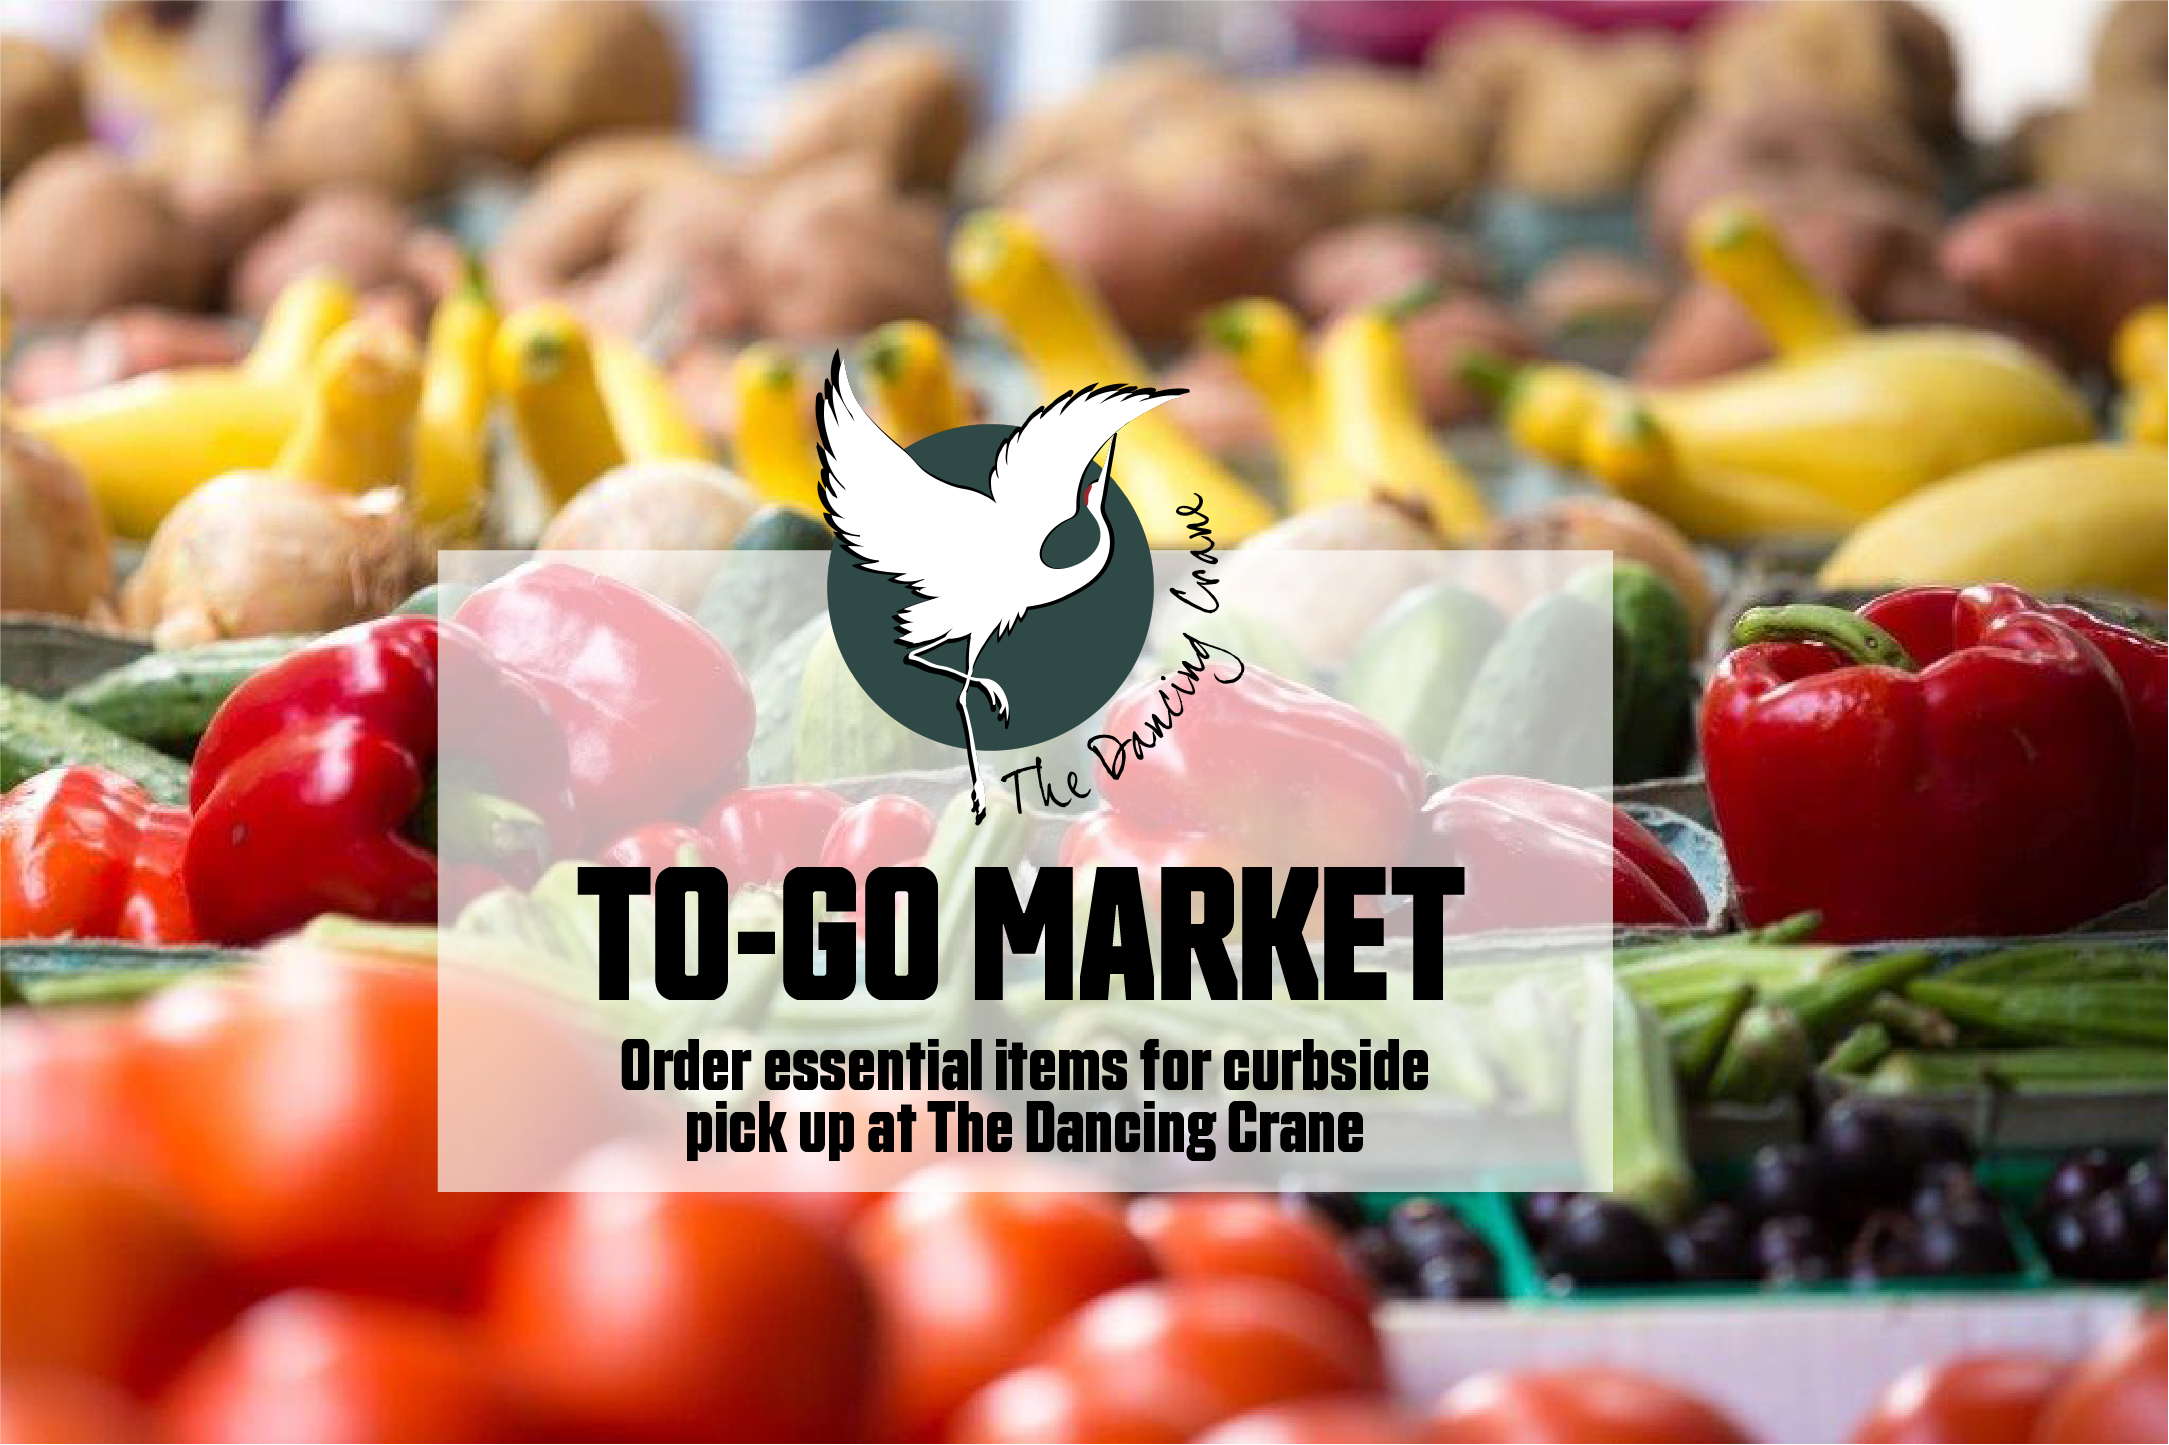 The Dancing Crane to go market now available.